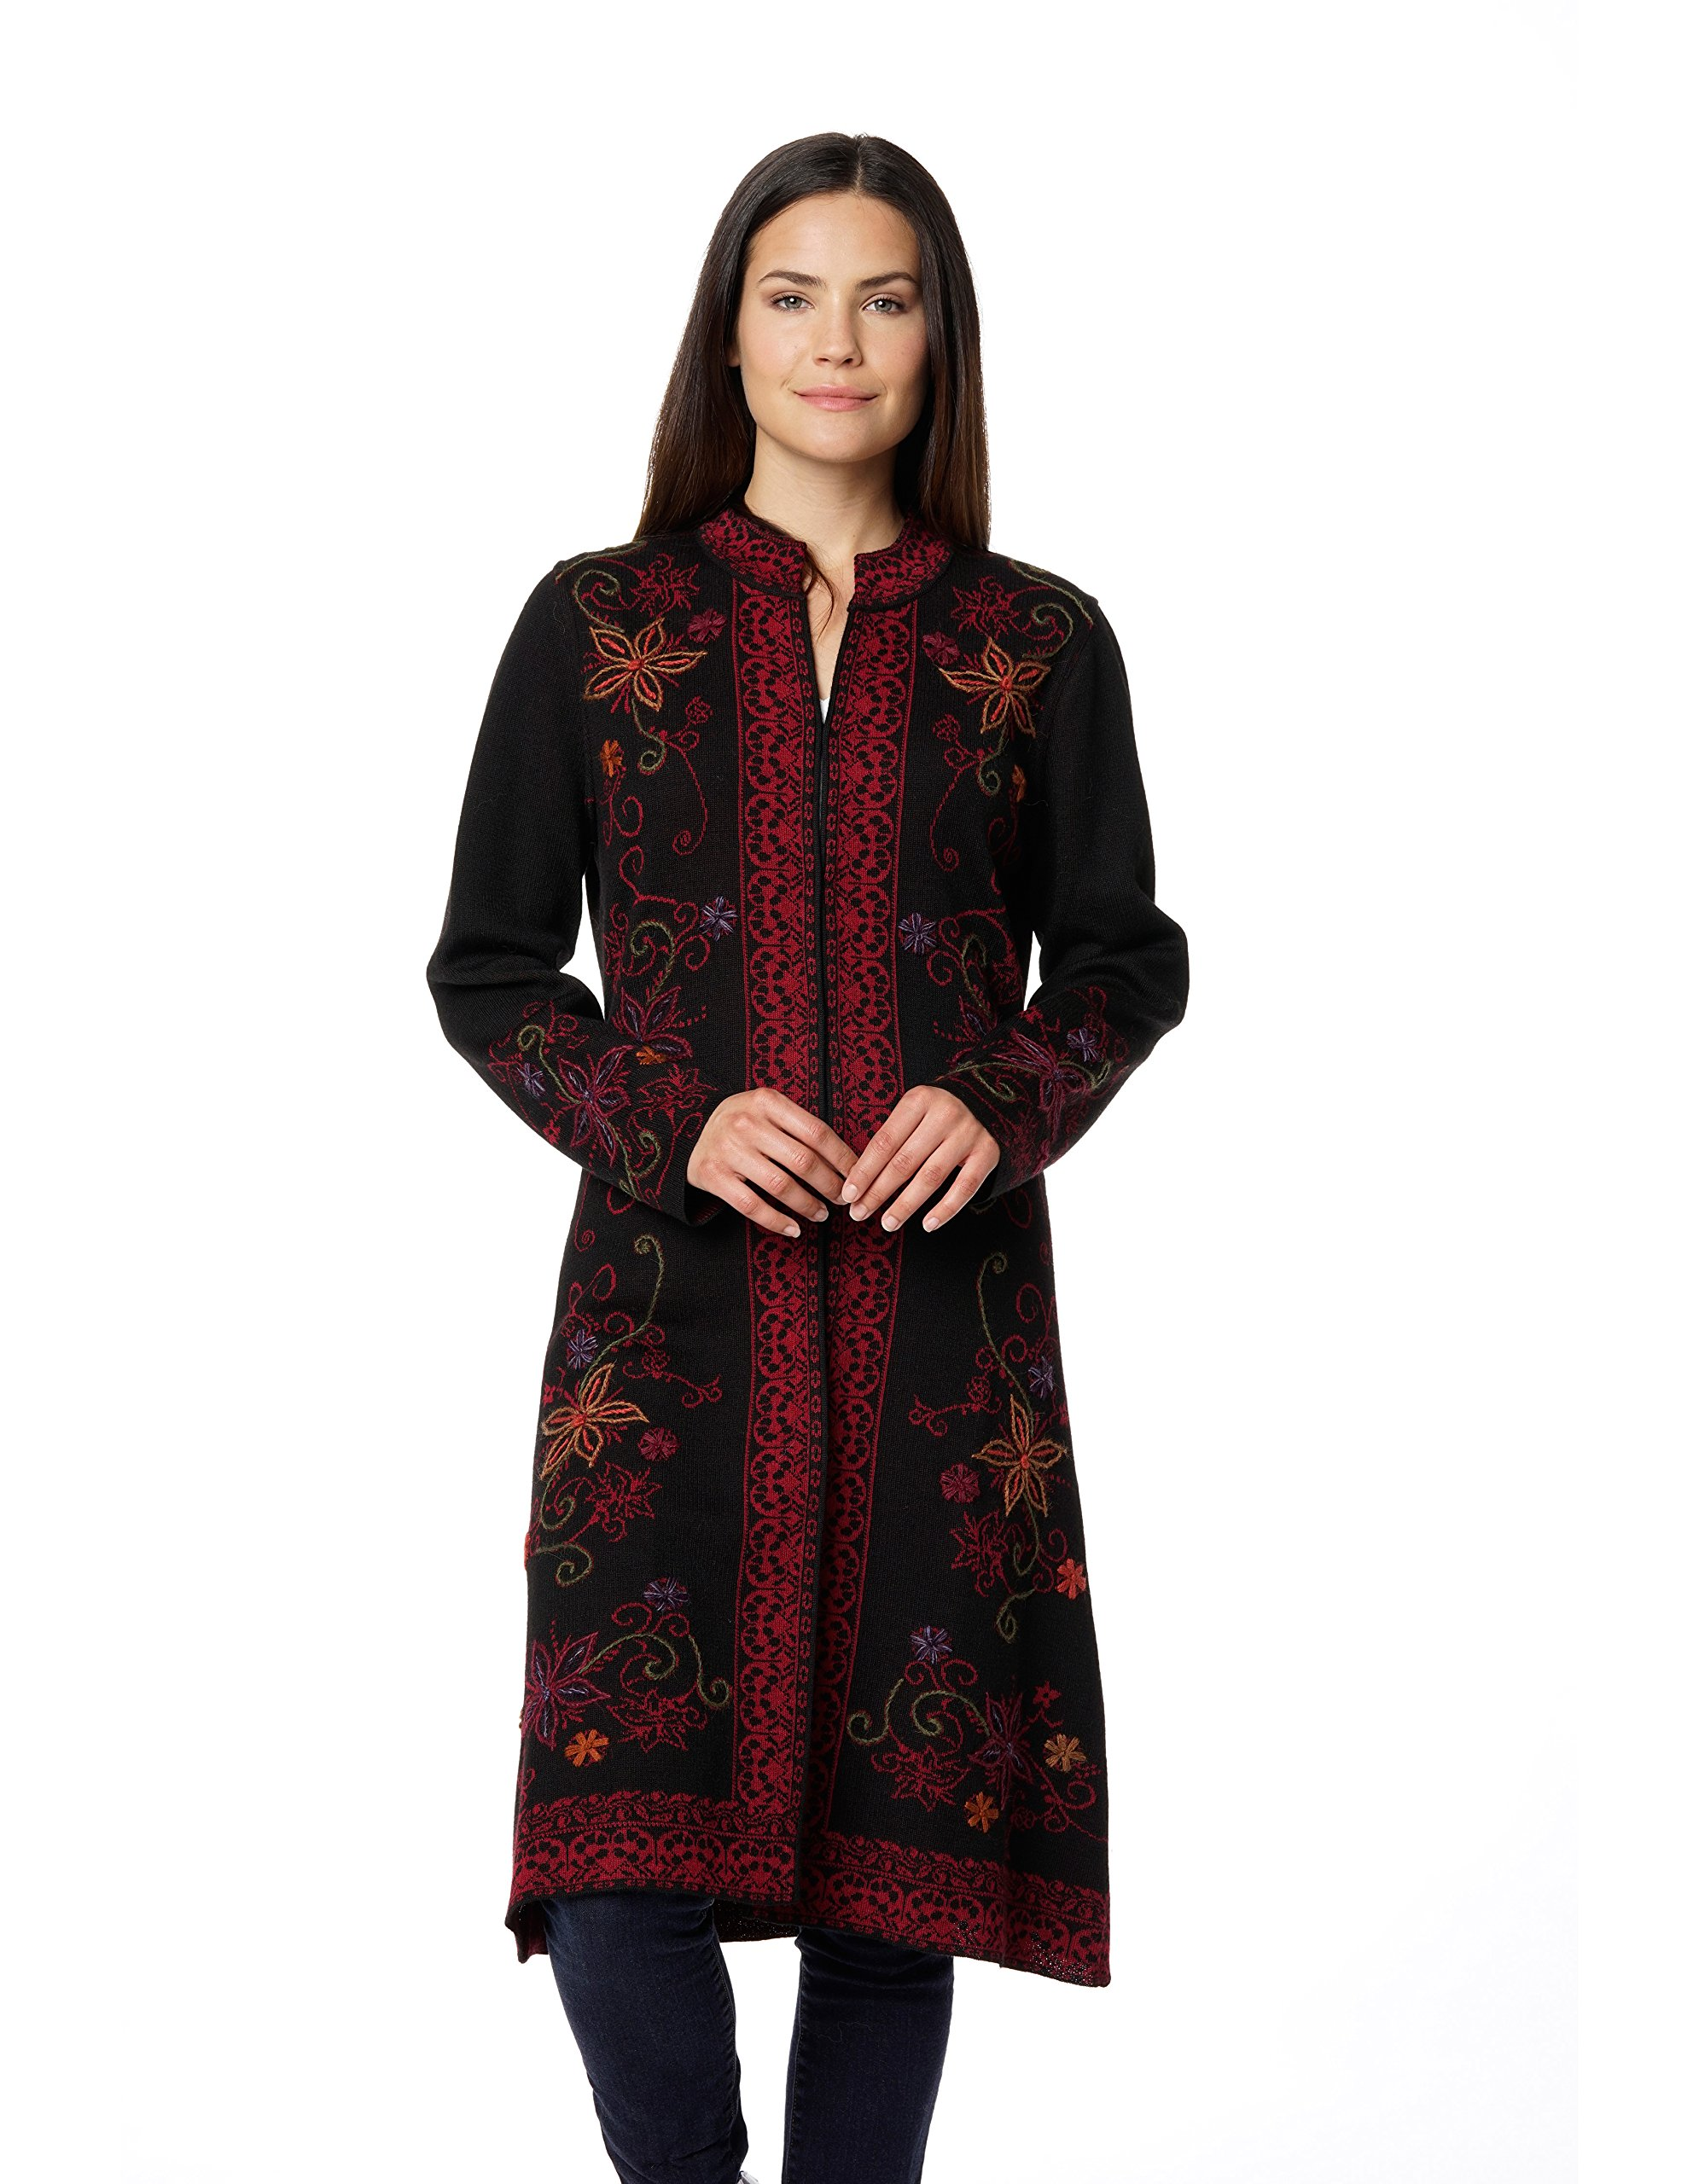 Womens 100% Baby Alpaca Hand-Embroidered Long Cardigan Sweater Coat ''Ottoman''-Md